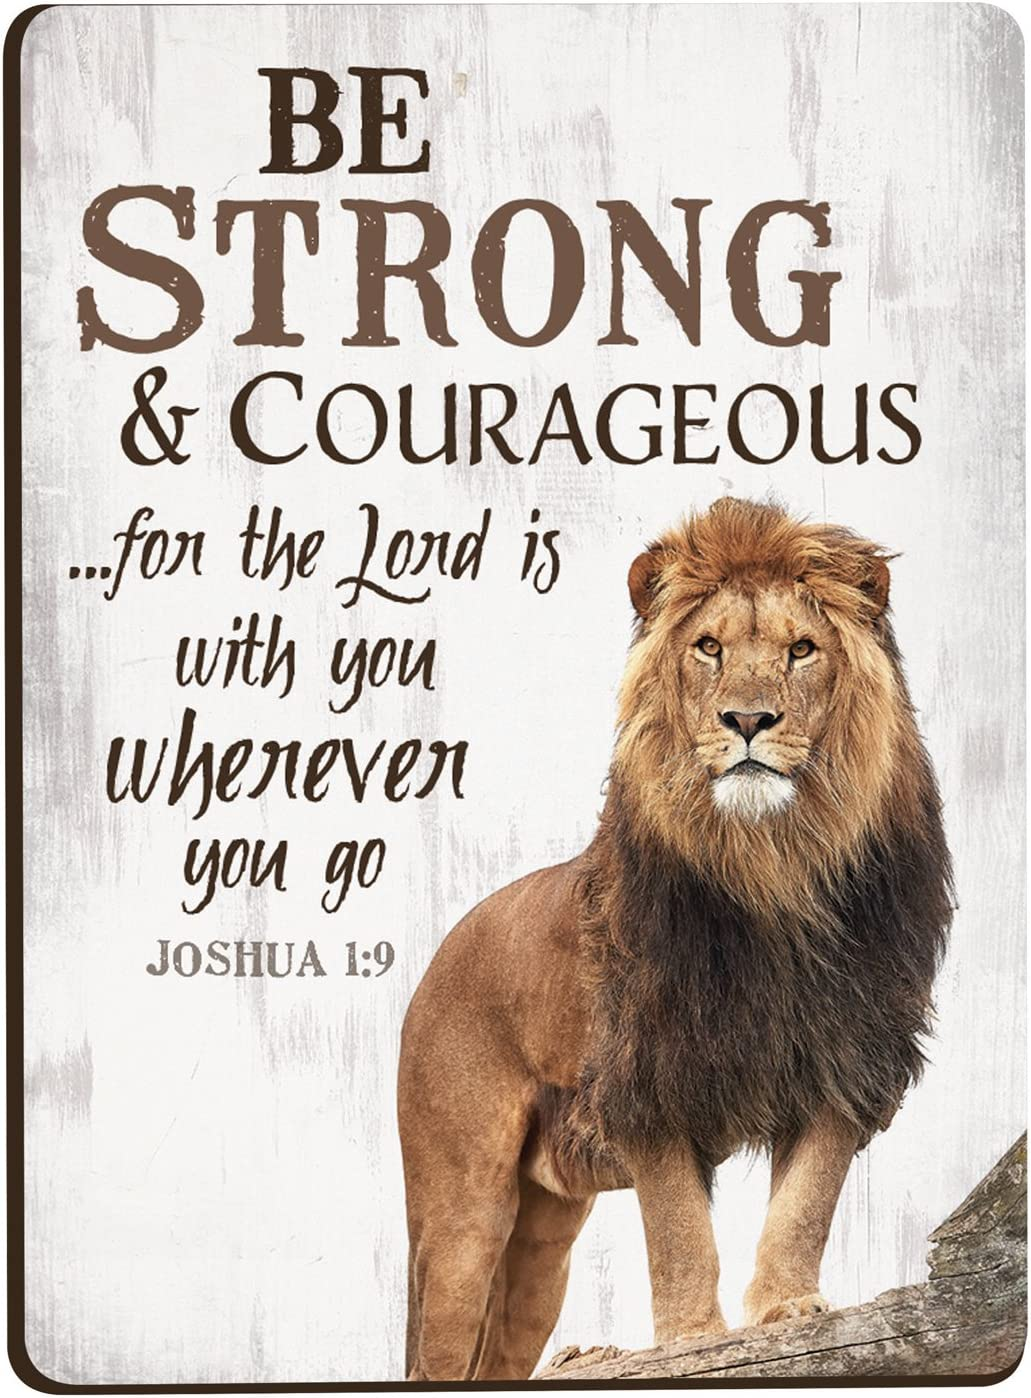 Be Strong & Courageous Lion 3 x 4 Inch Wood Lithograph Magnet